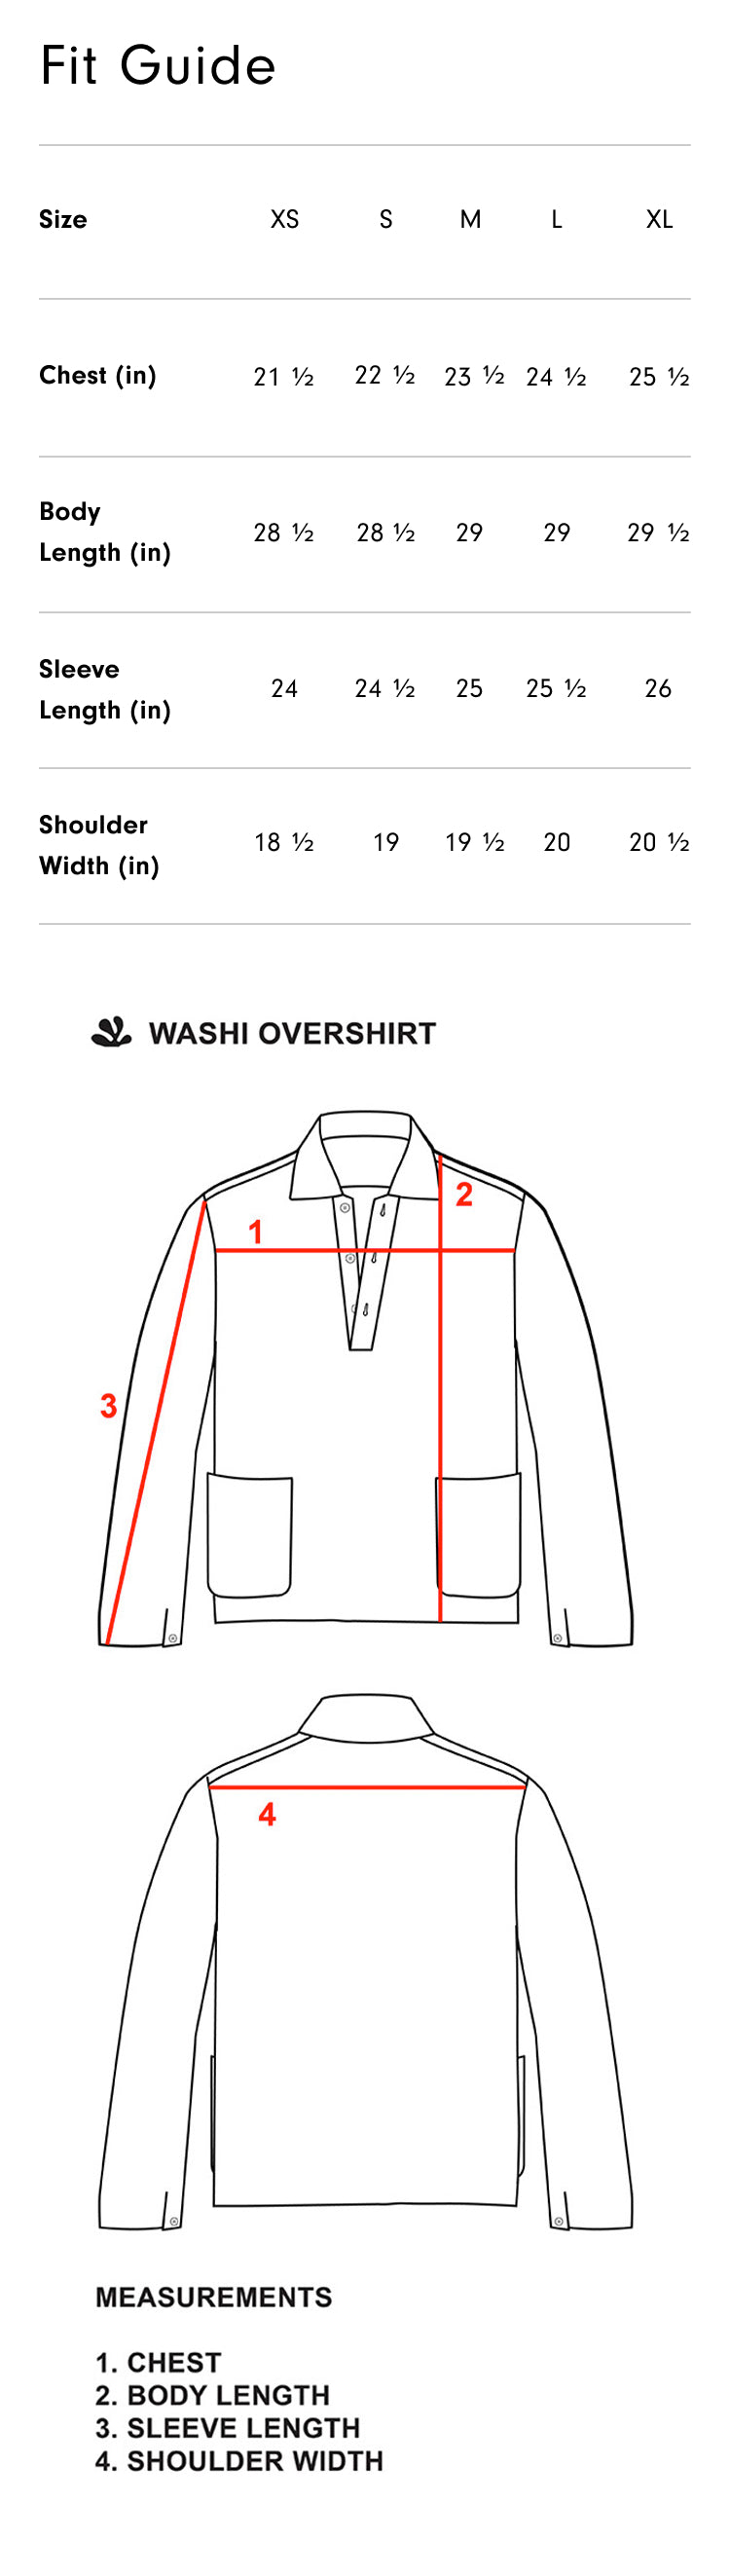 Product fit guide